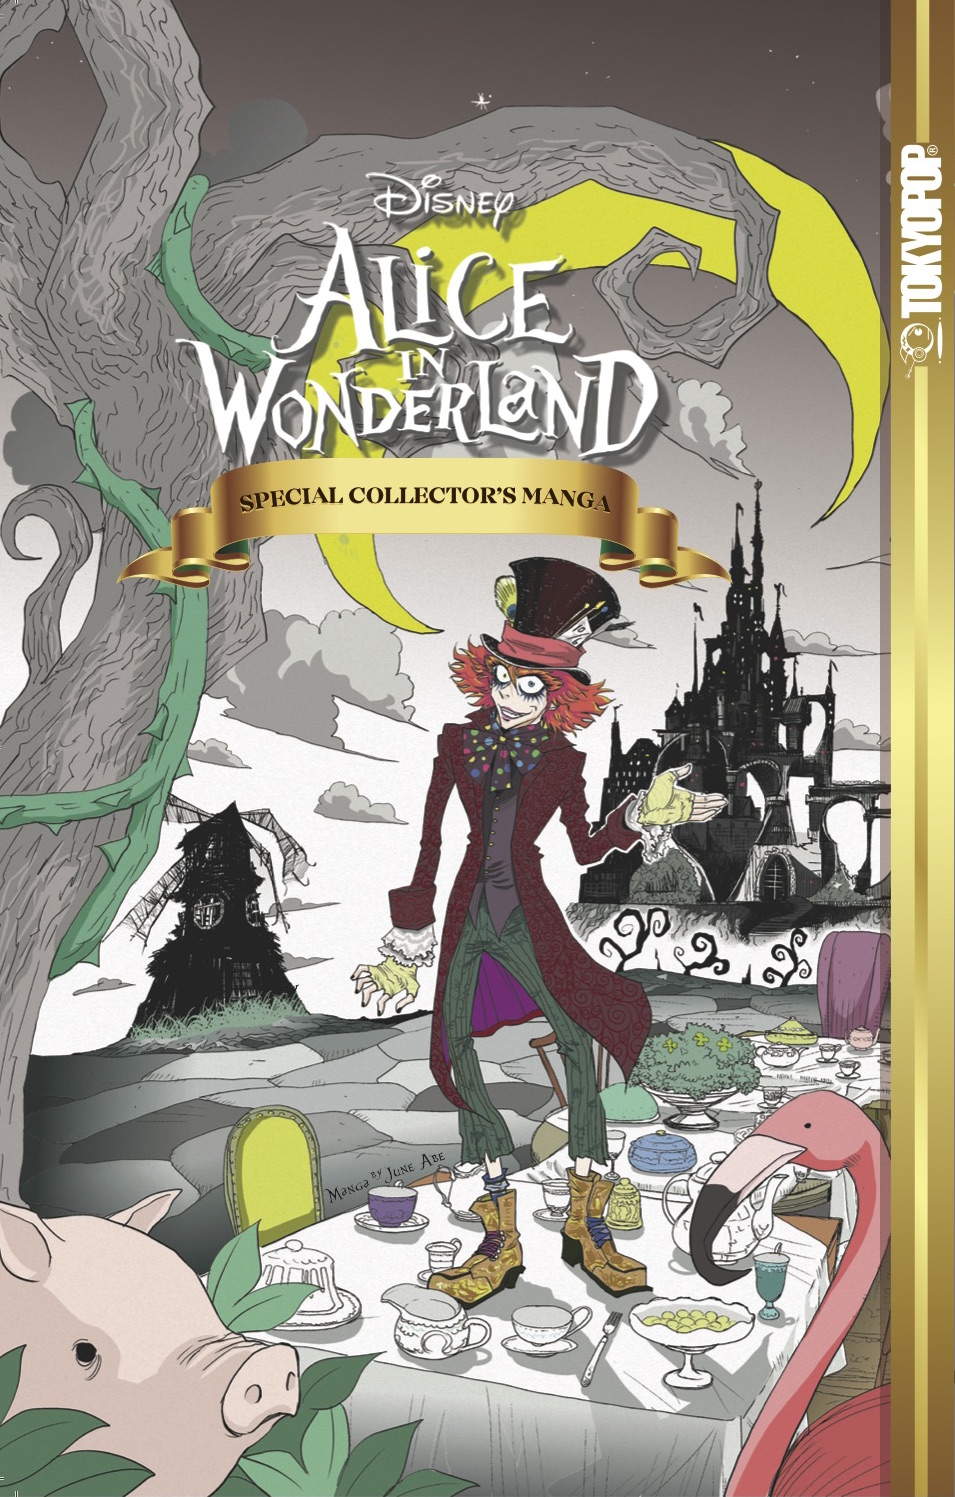 DISNEY ALICE IN WONDERLAND: SPECIAL COLLECTOR'S MANGA